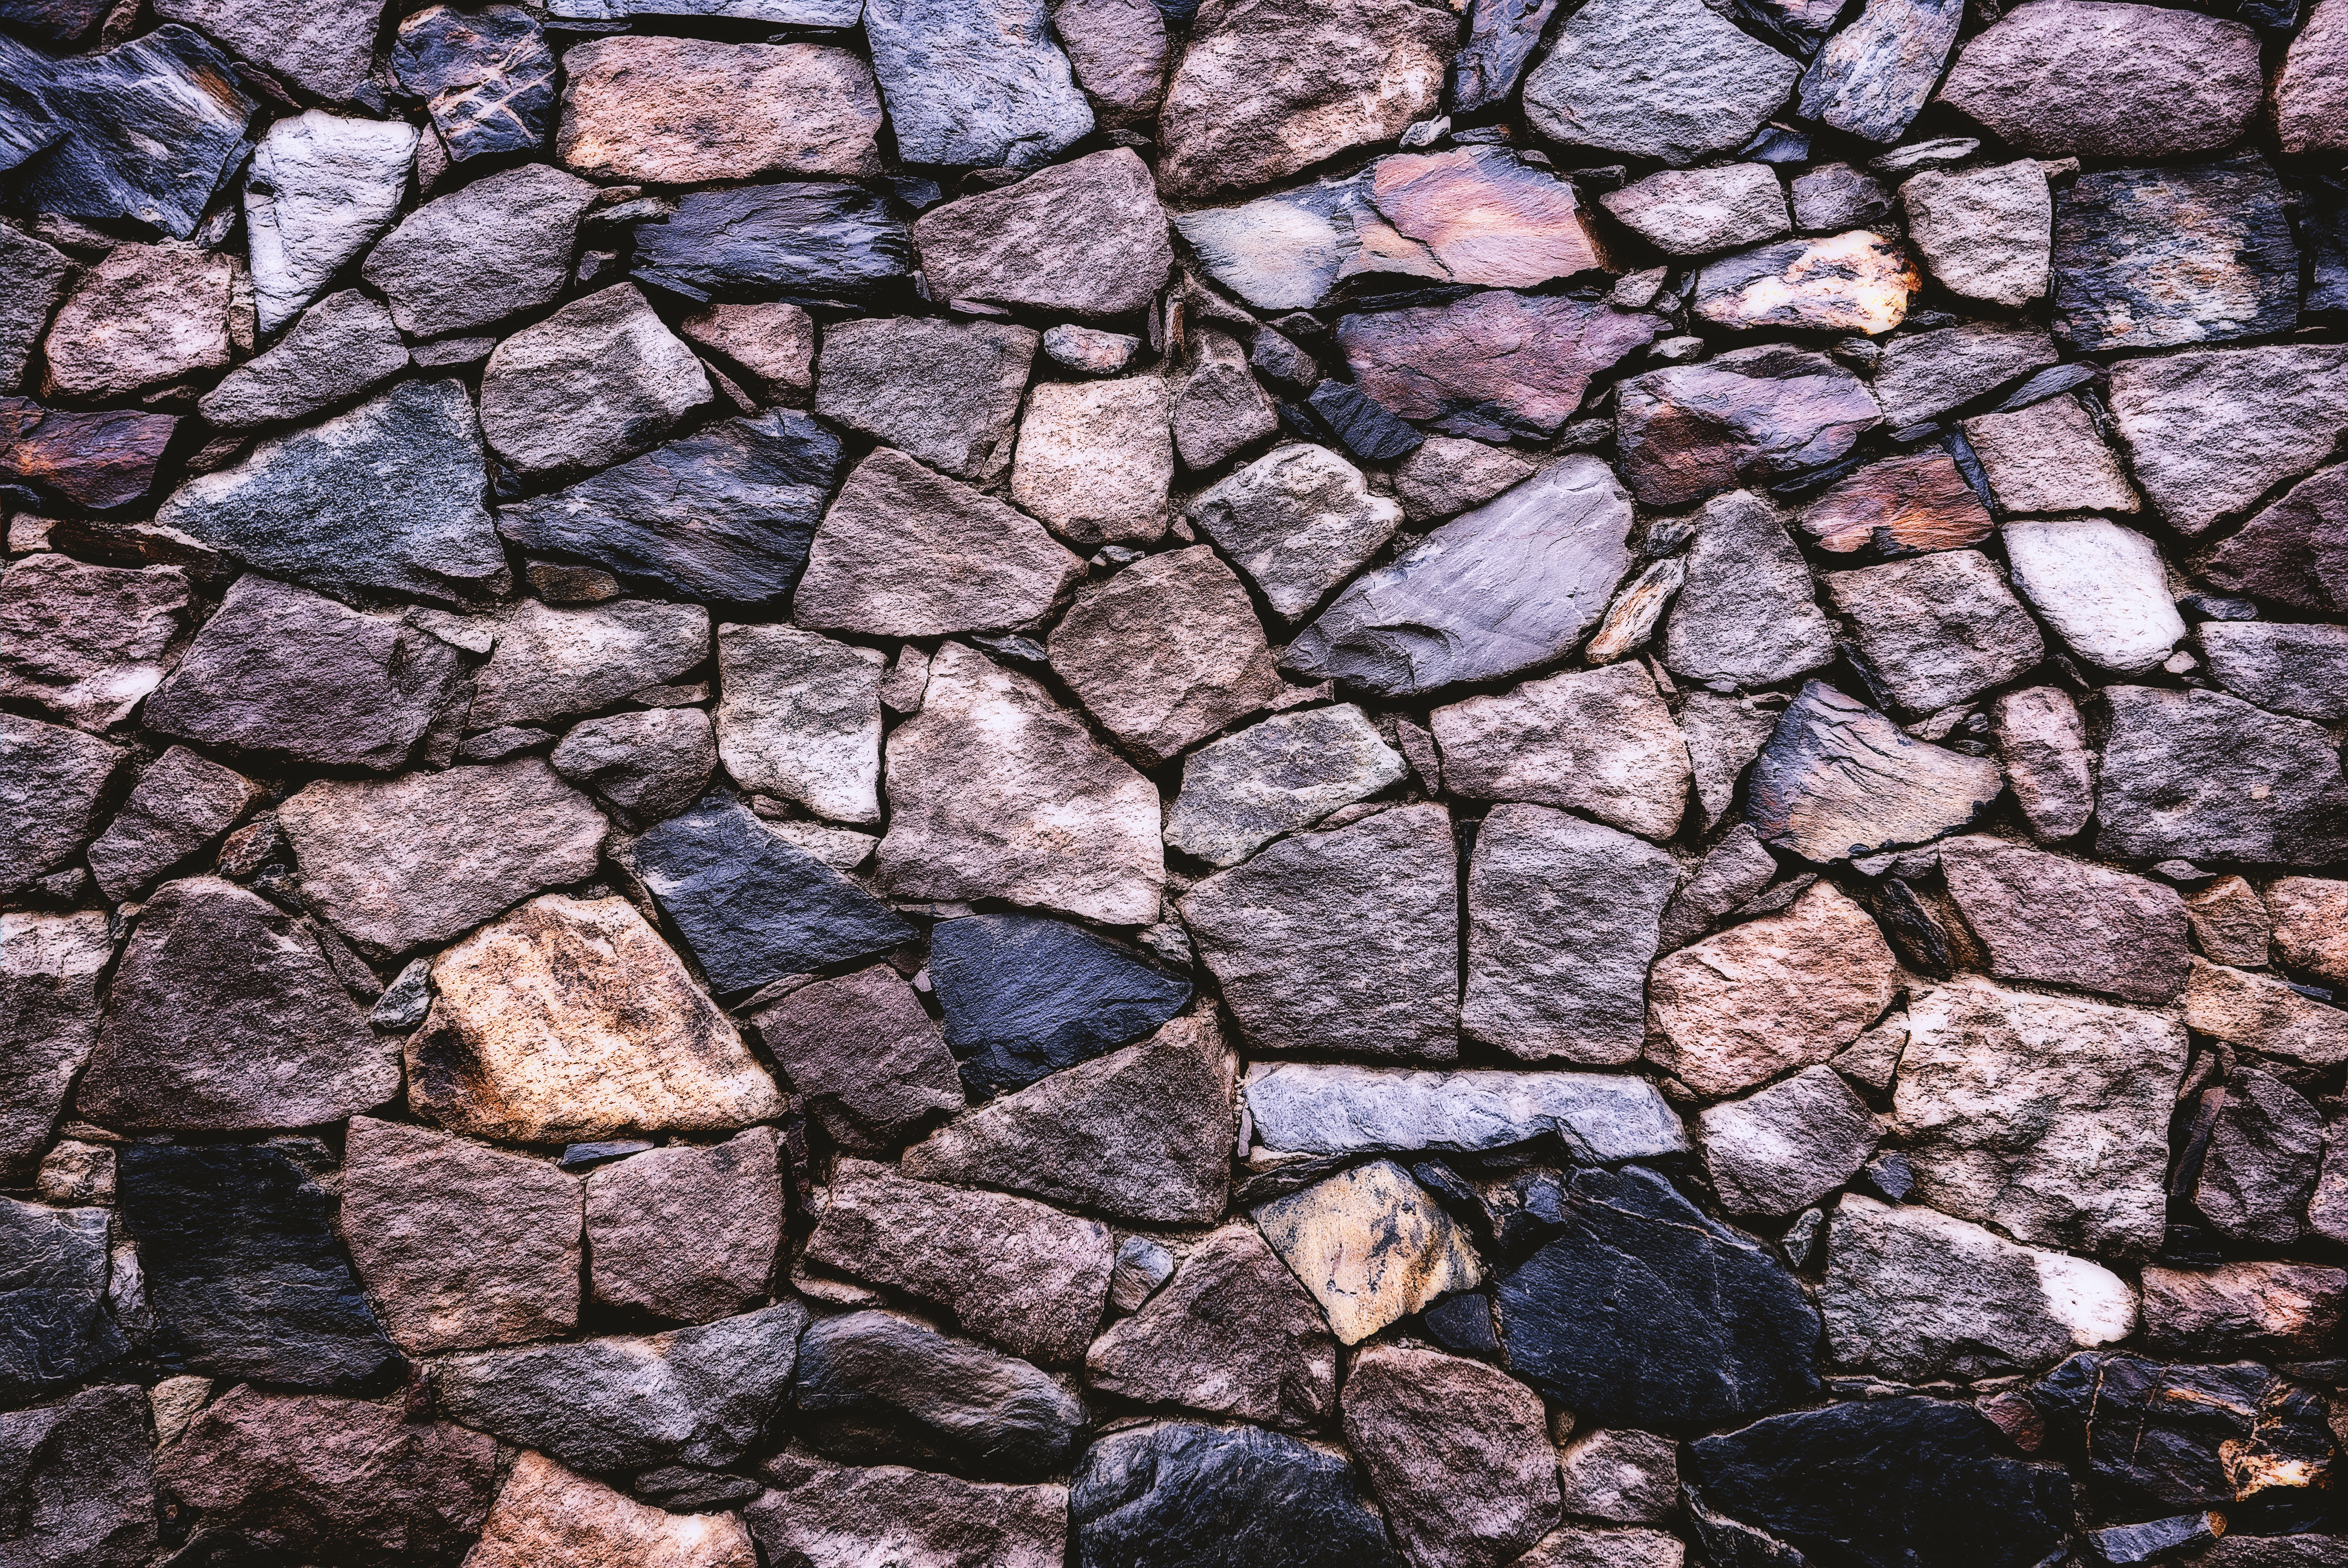 123335 download wallpaper Stones, Pattern, Texture, Textures, Wall screensavers and pictures for free